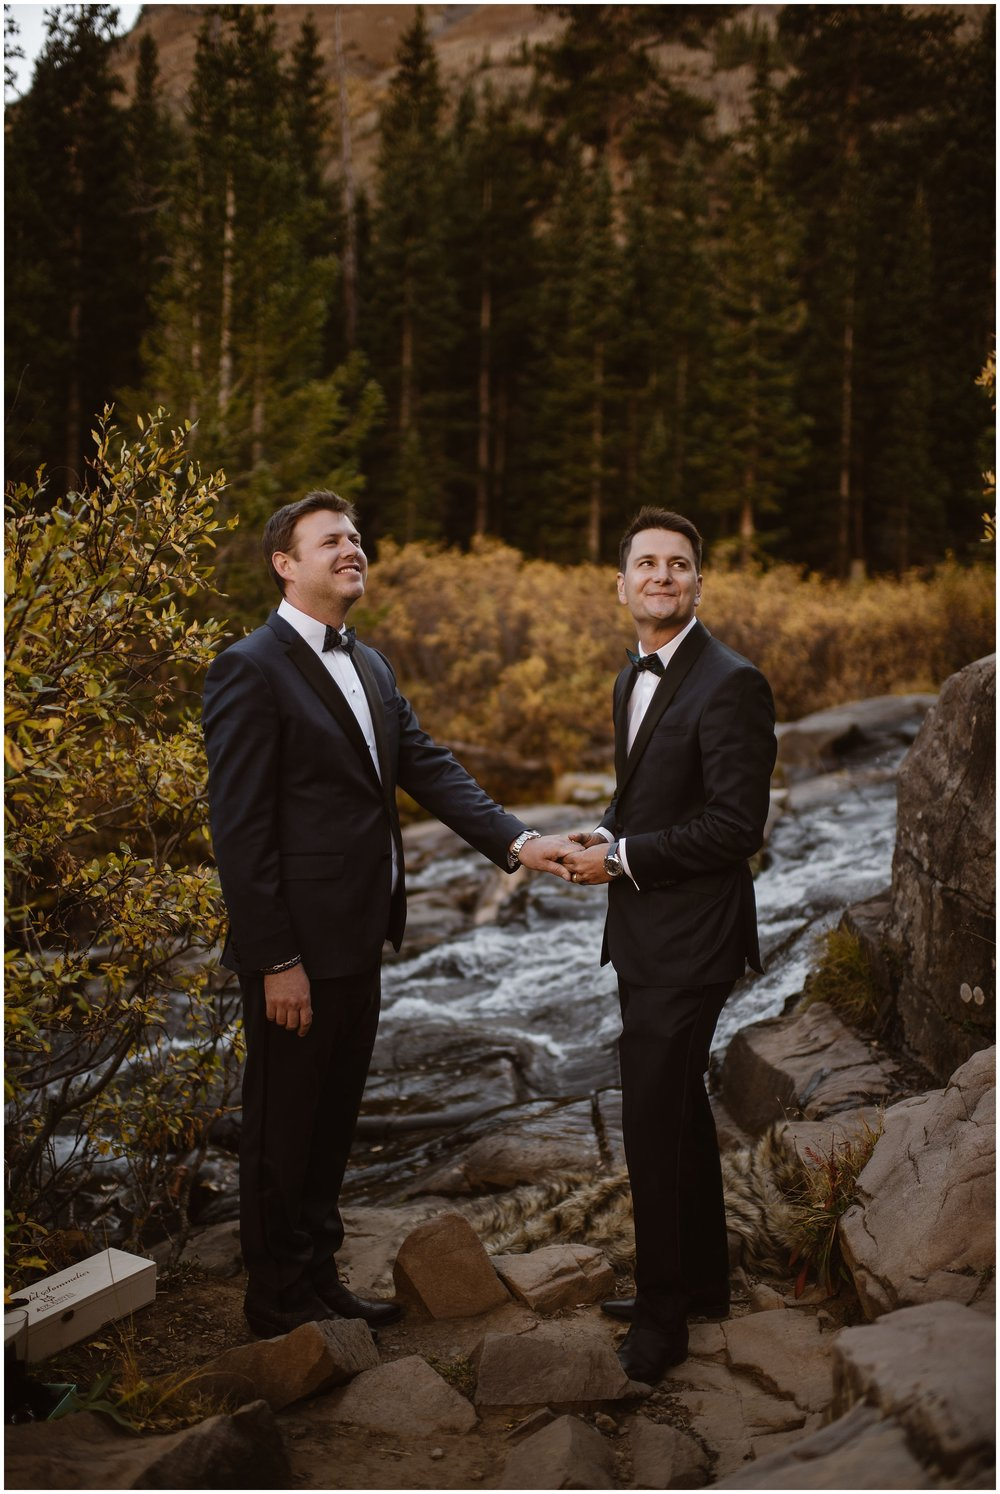 The two grooms, Brian and Ernie, hold hands as they stand at the base of a gorgeous waterfall as their family leads them through a unique elopement ceremony . Choosing to have a private ceremony followed by a family-oriented ceremony is one of the best elopement ideas a couple can include in their special day.